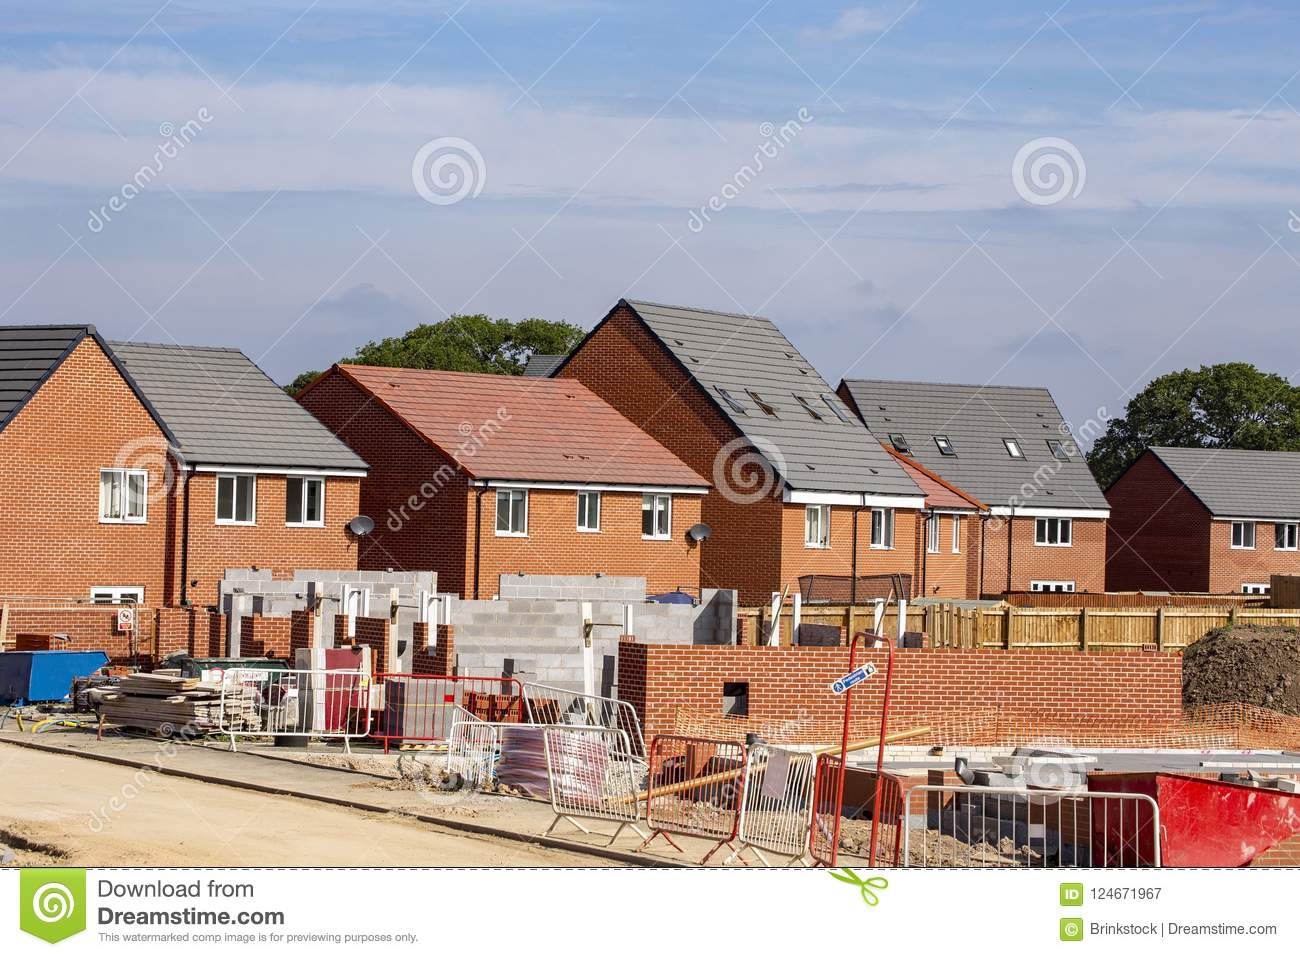 Newly build homes, construction site UK